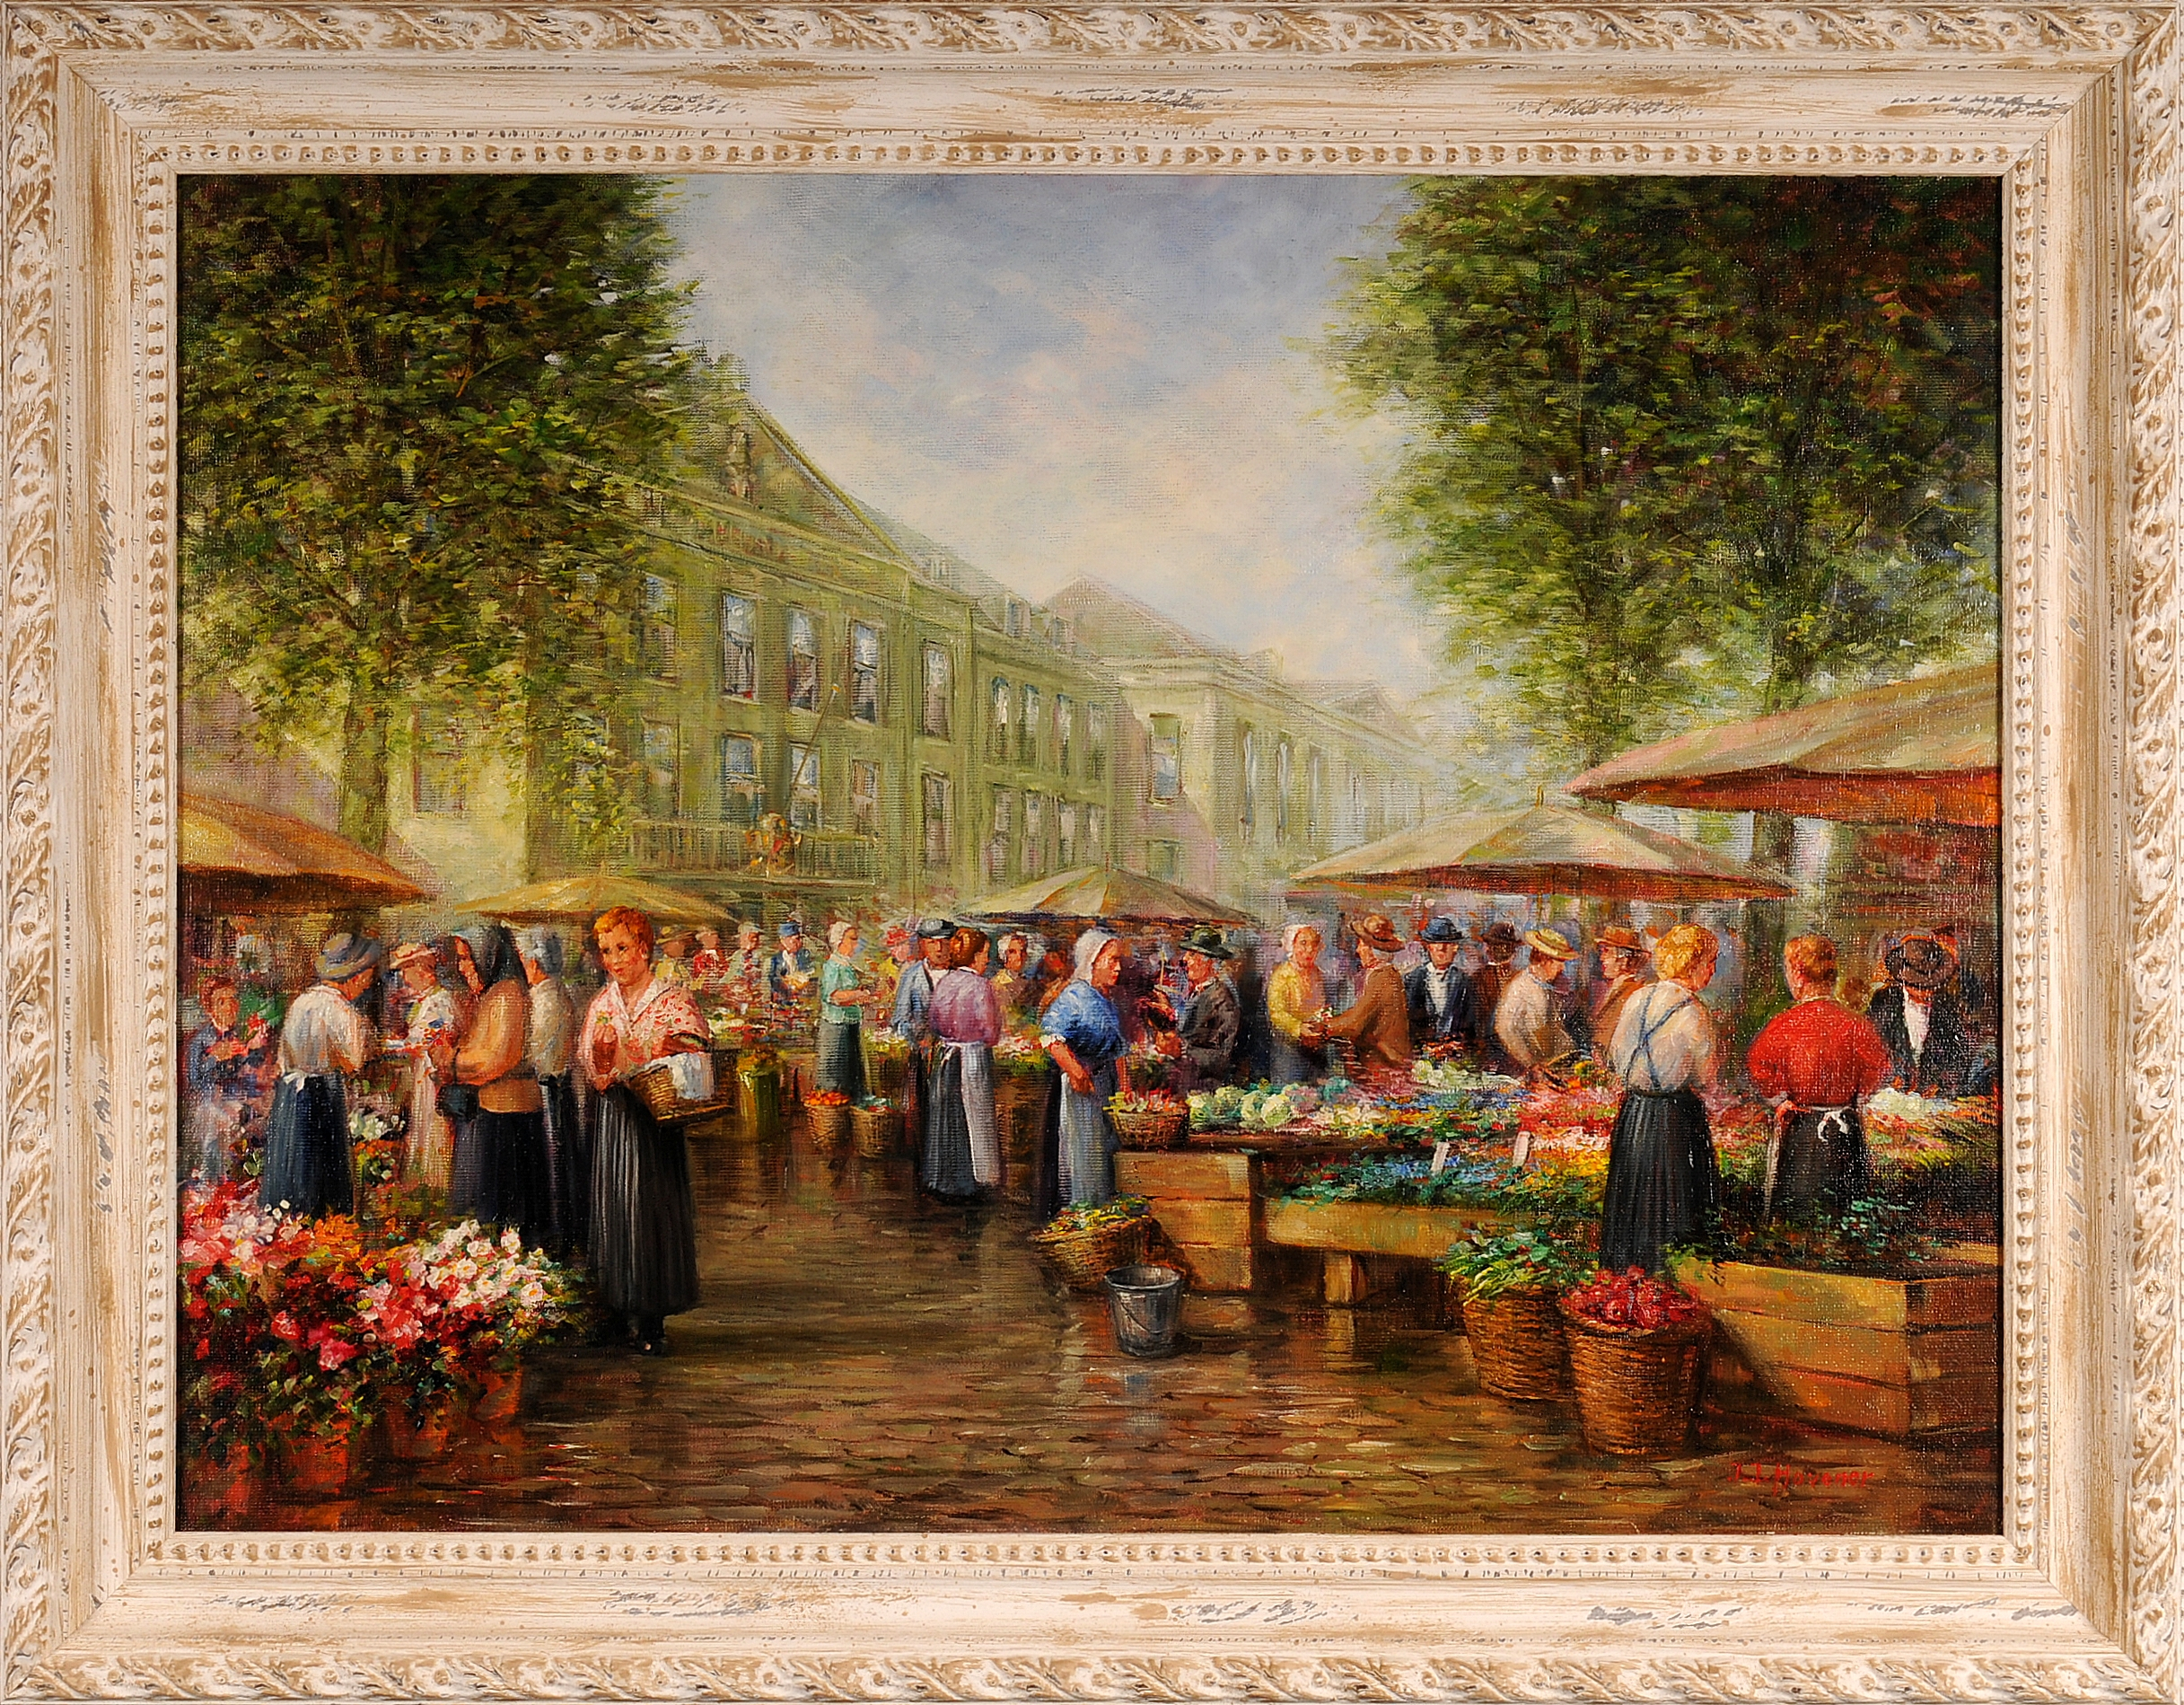 Bloemenmarkt door Jan Hovener